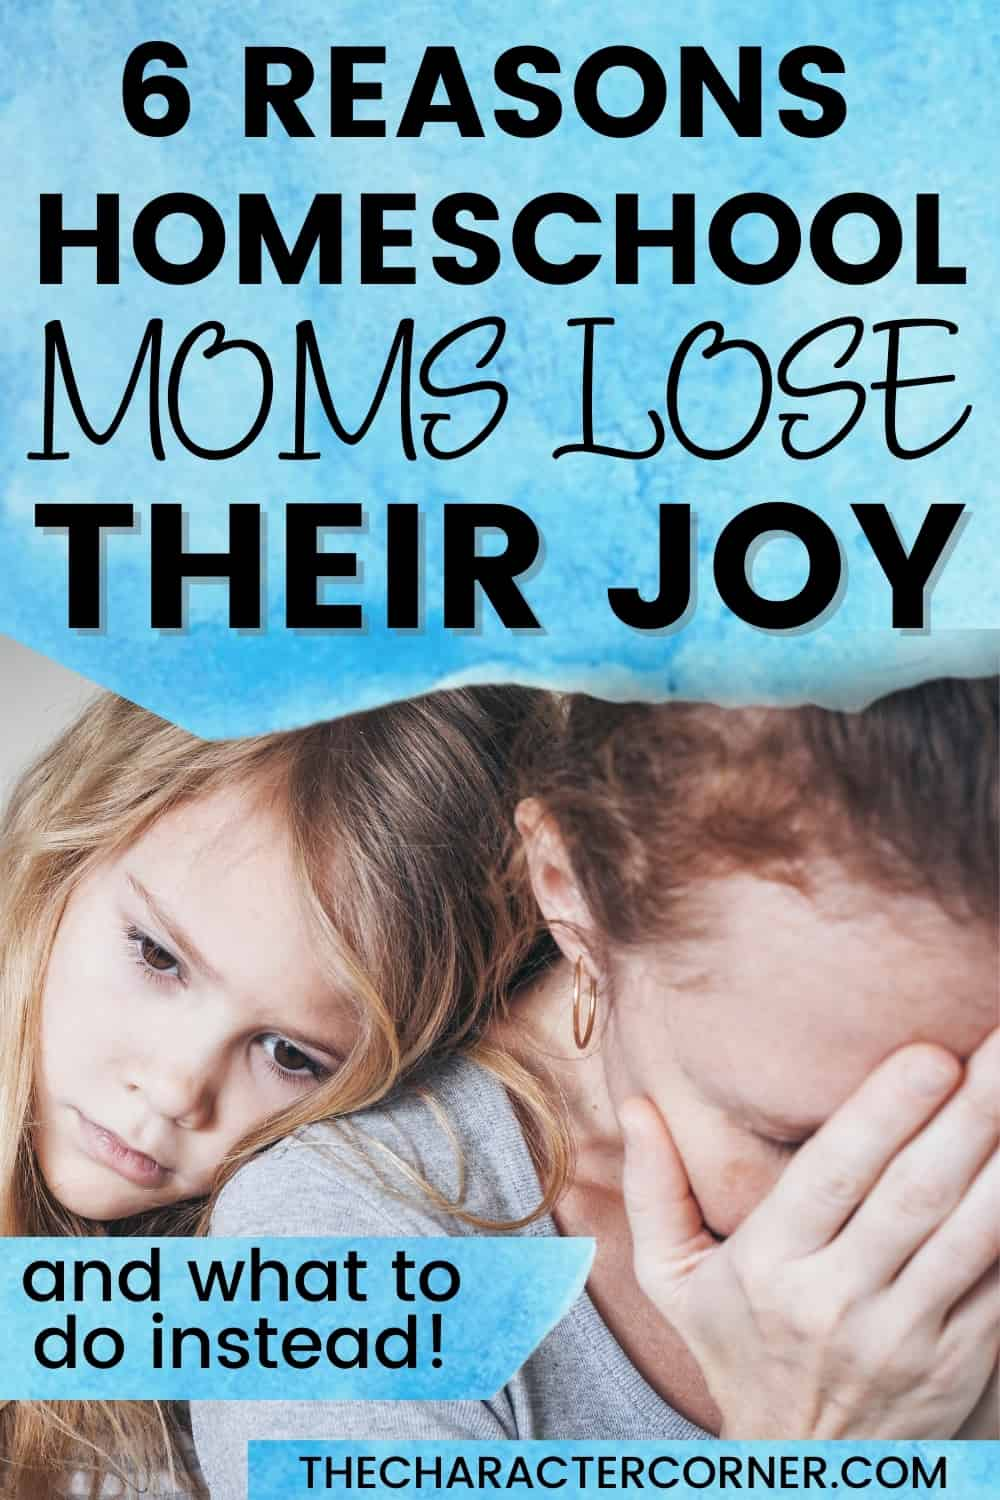 Daughter laying on sad moms shoulder while mom puts face in hands text on image reads 6 Reasons Homeschool Moms Lose Their Joy